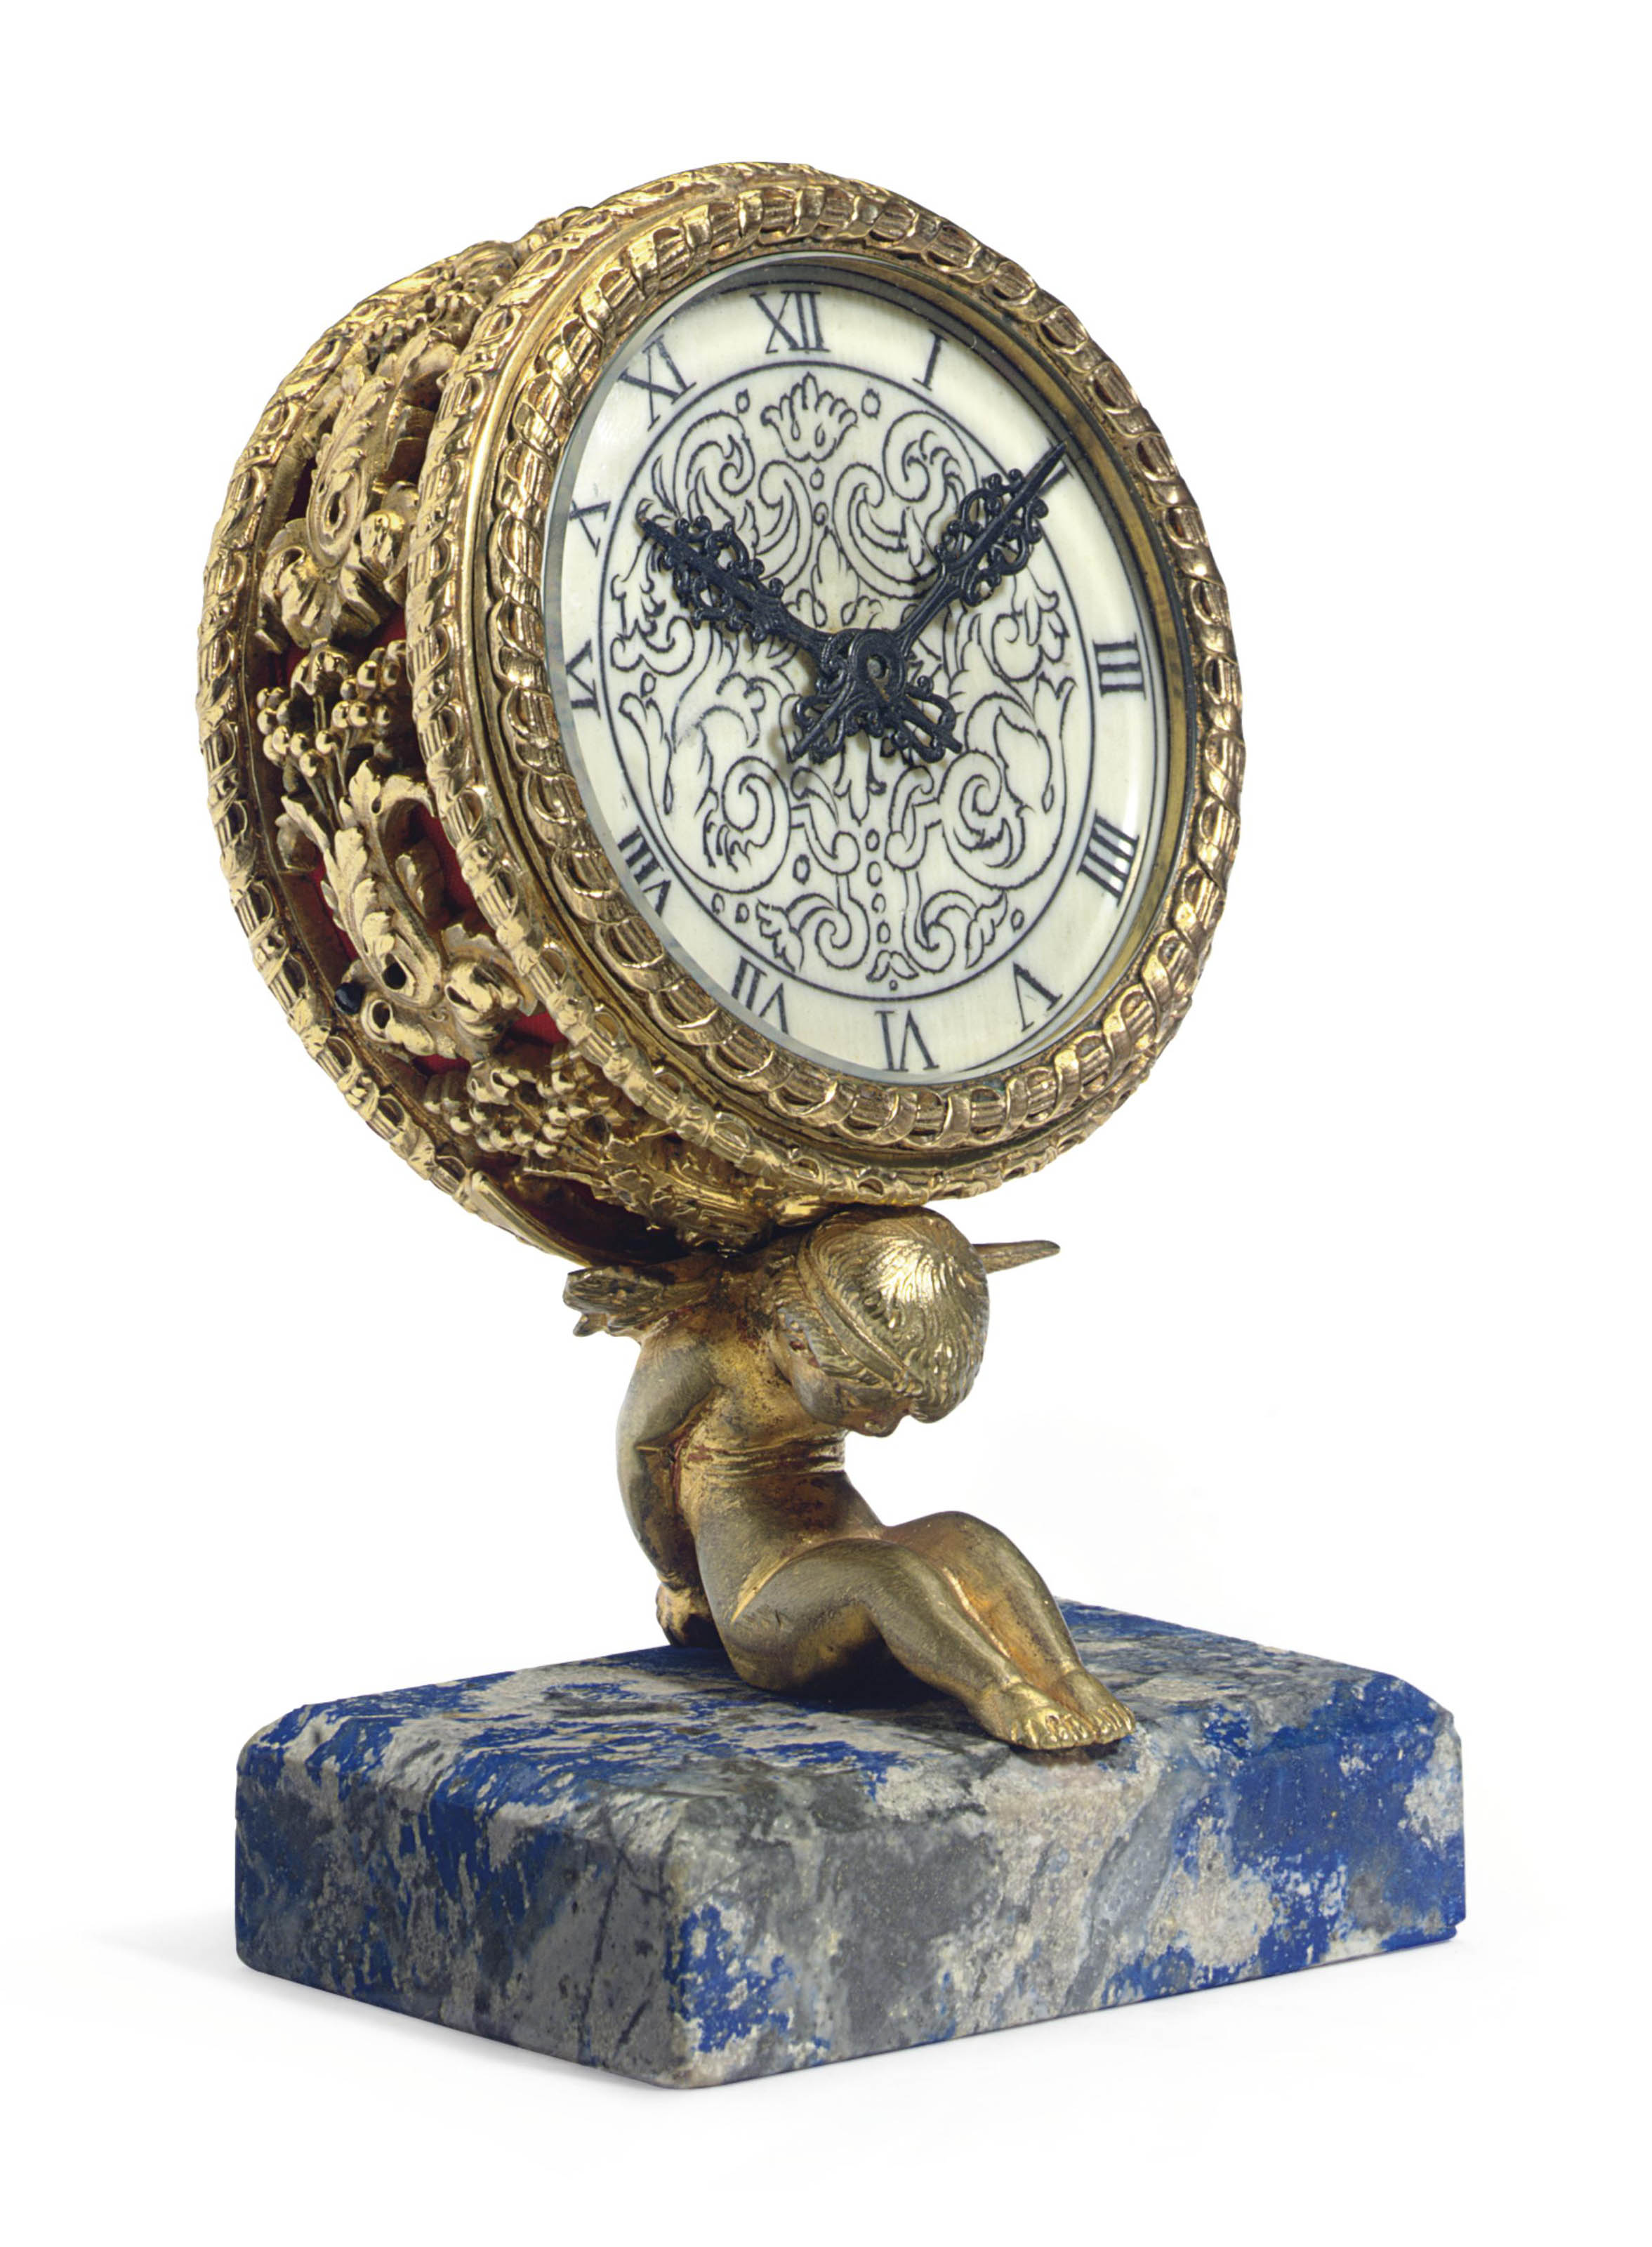 AN AMERICAN GILT-BRONZE, IVORY AND LAPIS LAZULI TABLE CLOCK